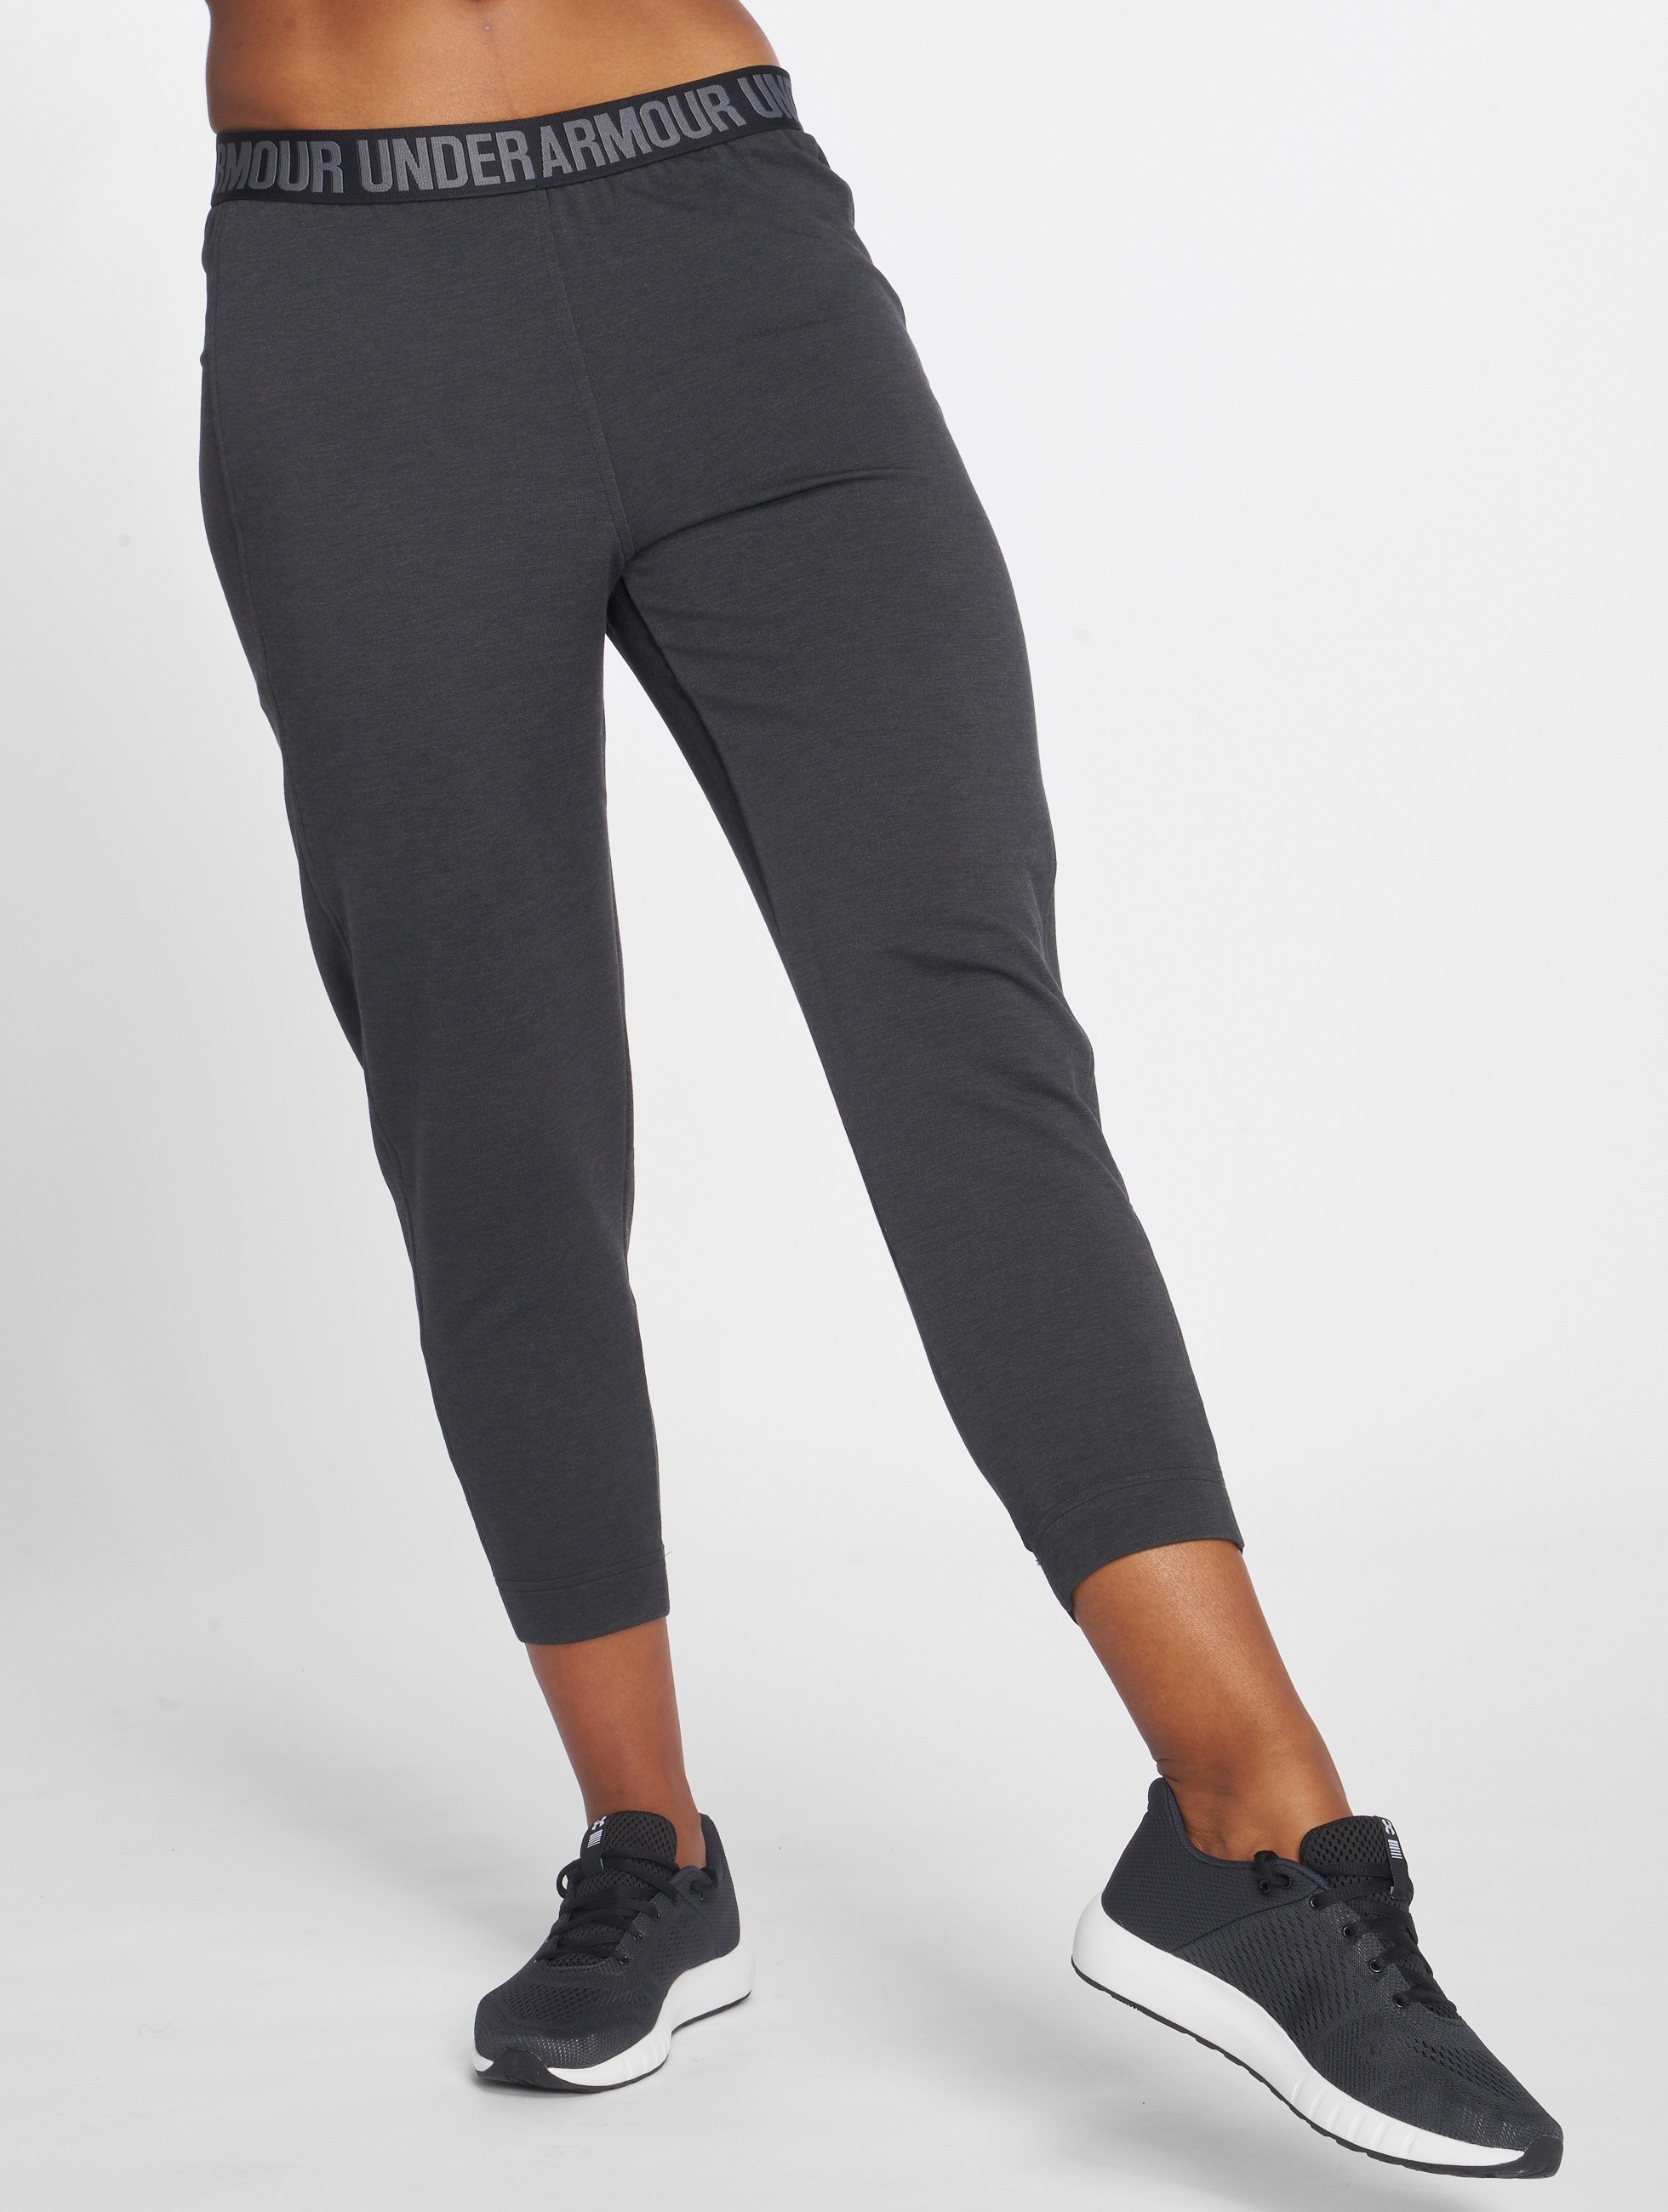 Under Armour Frauen Jogginghose Featherweight Fleece in schwarz